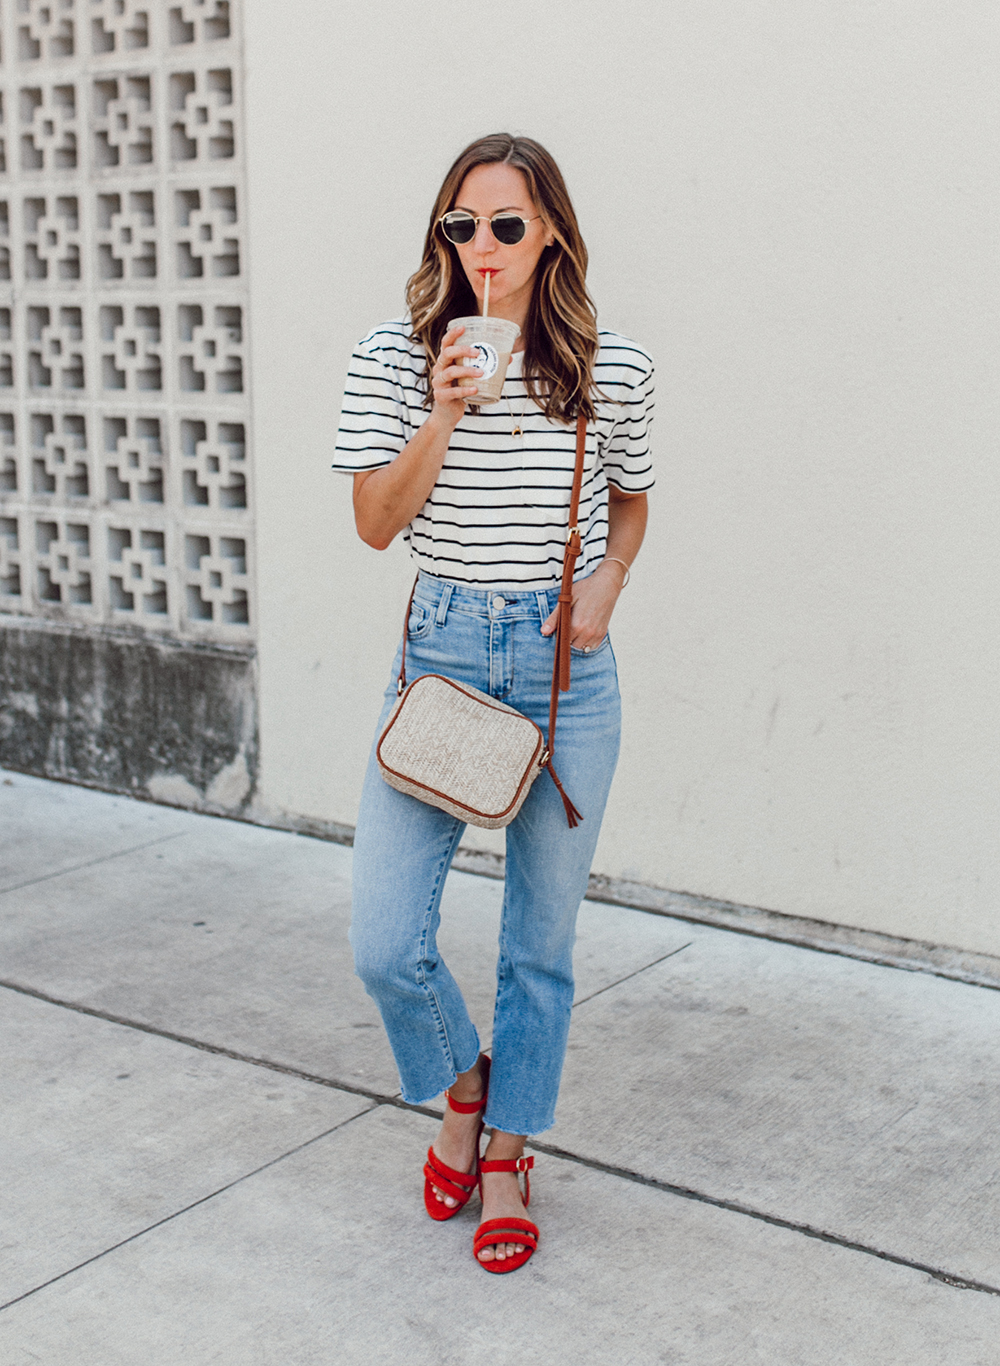 livvyland-blog-olivia-watson-sole-society-red-sandal-flats-spring-summer-outfit-idea-style-austin-texas-fashion-blogger-striped-shirt-10